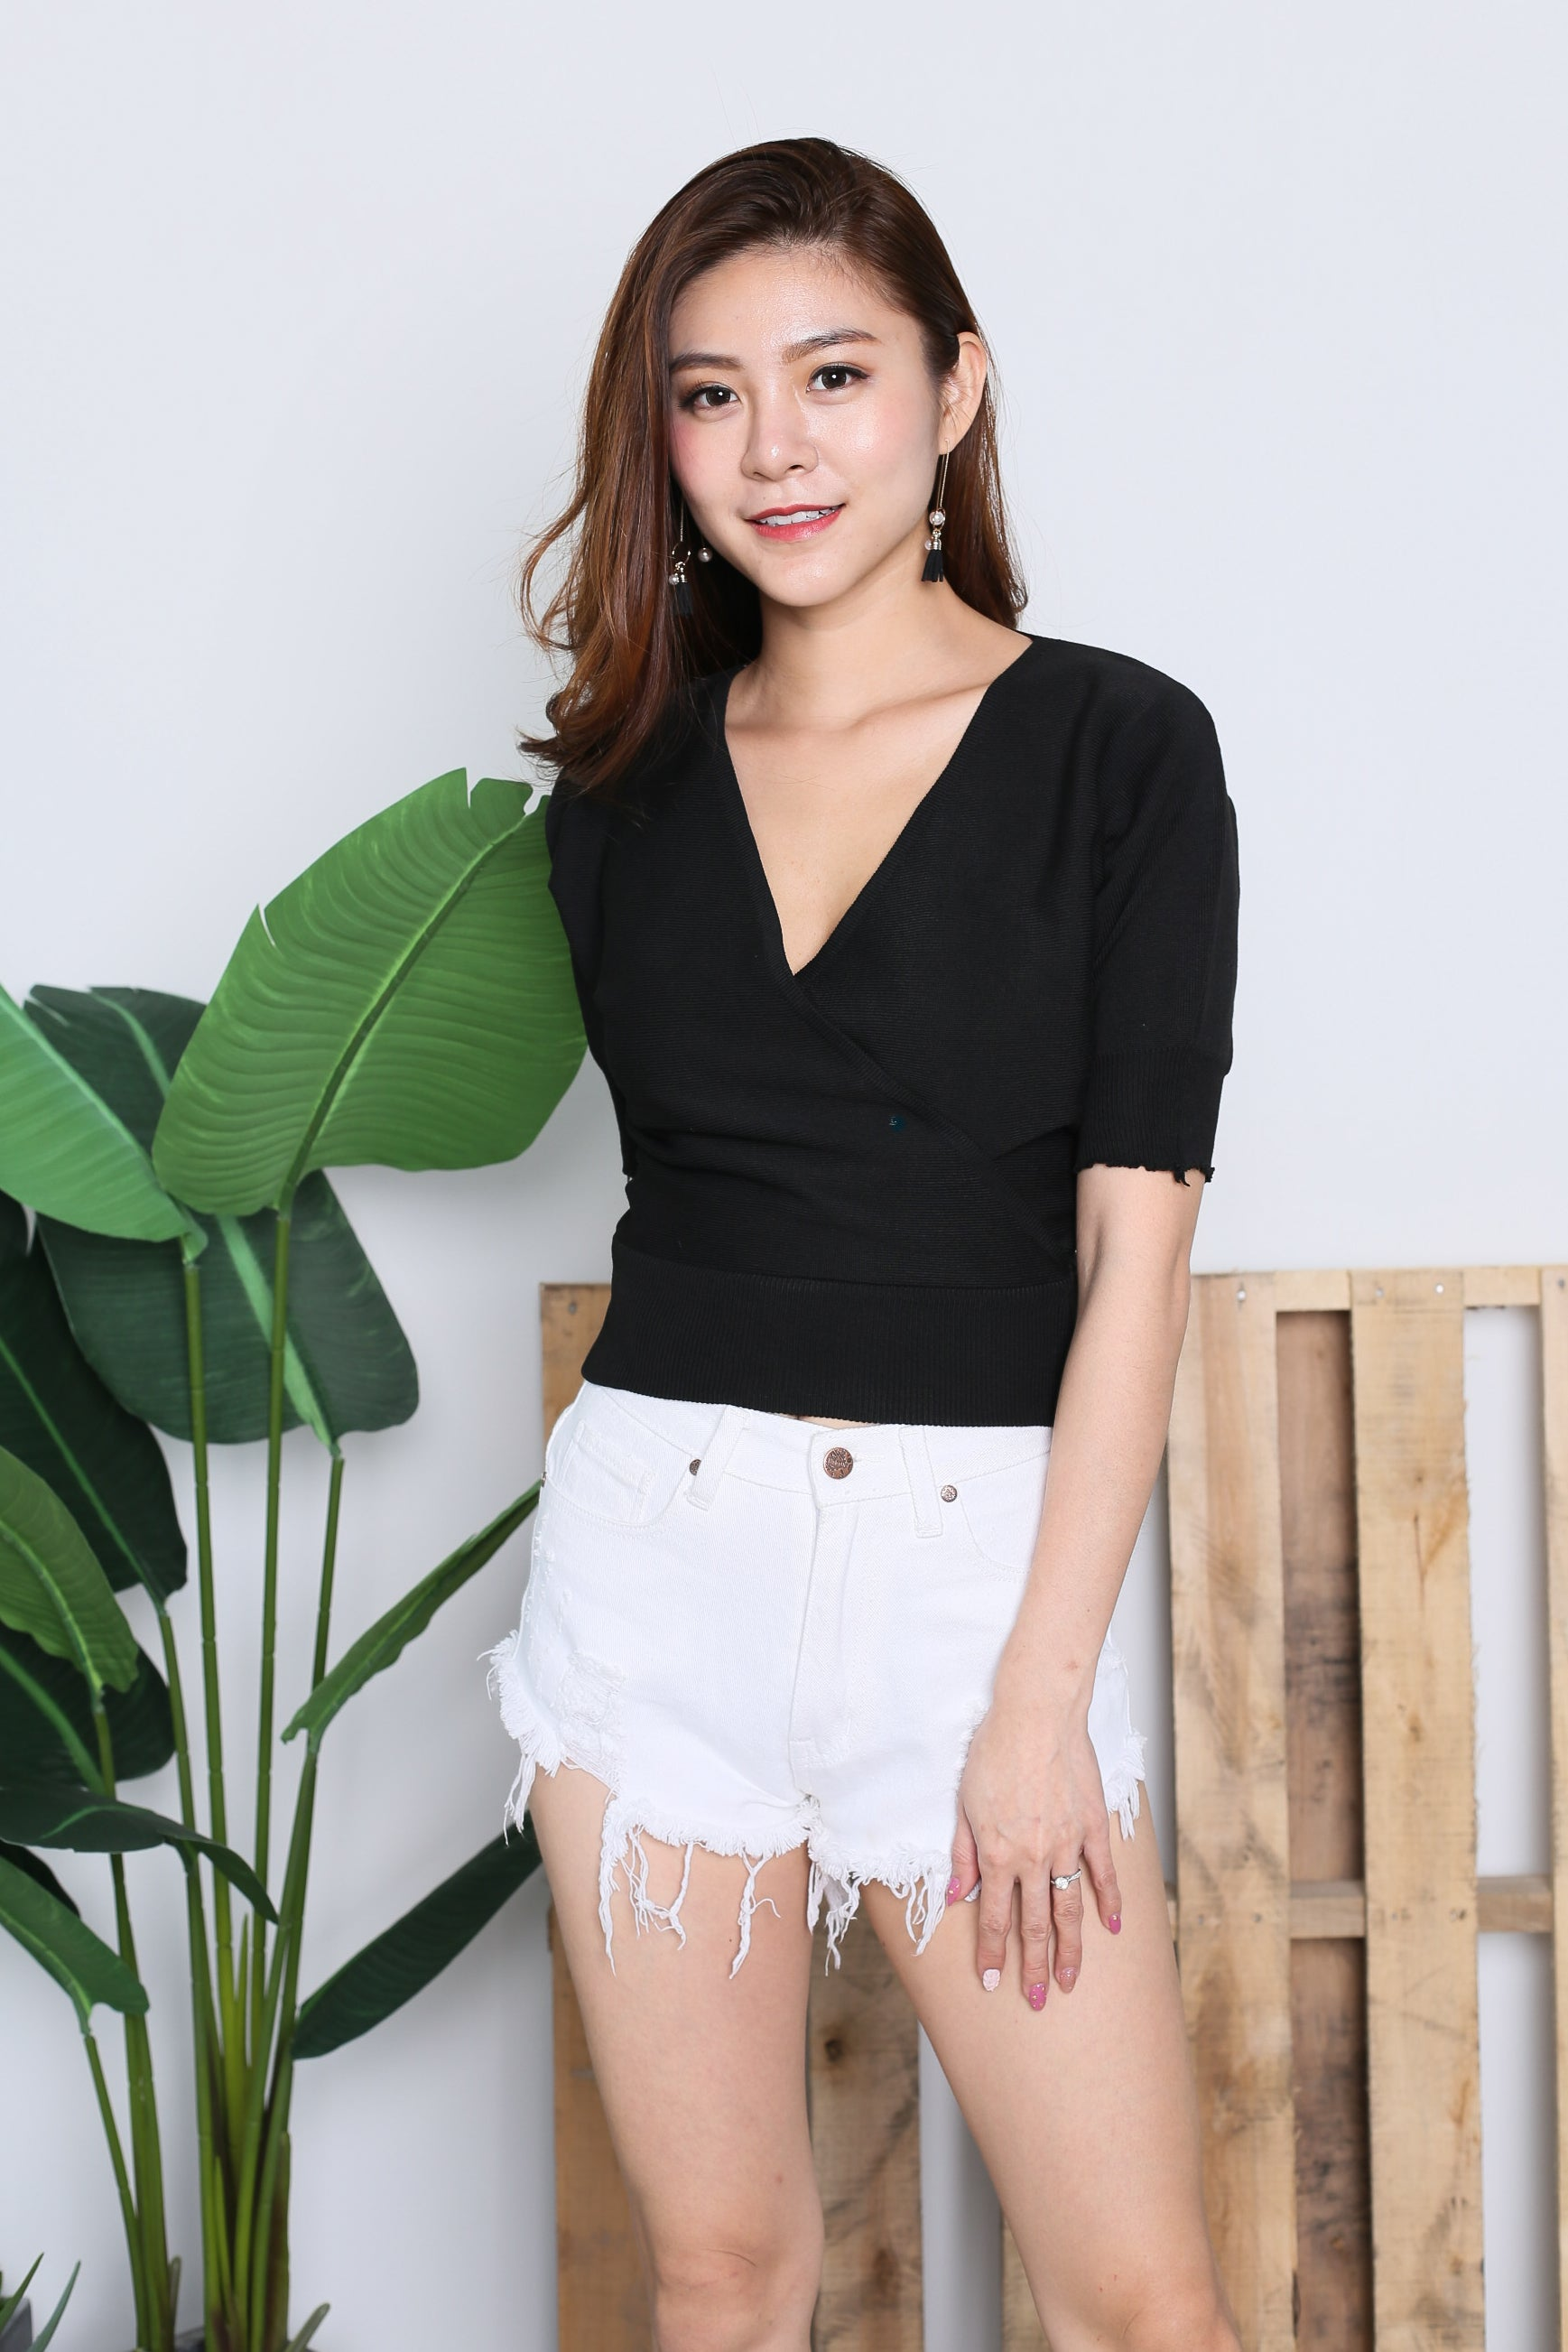 *RESTOCKED* GLENDA V KNIT TOP IN BLACK